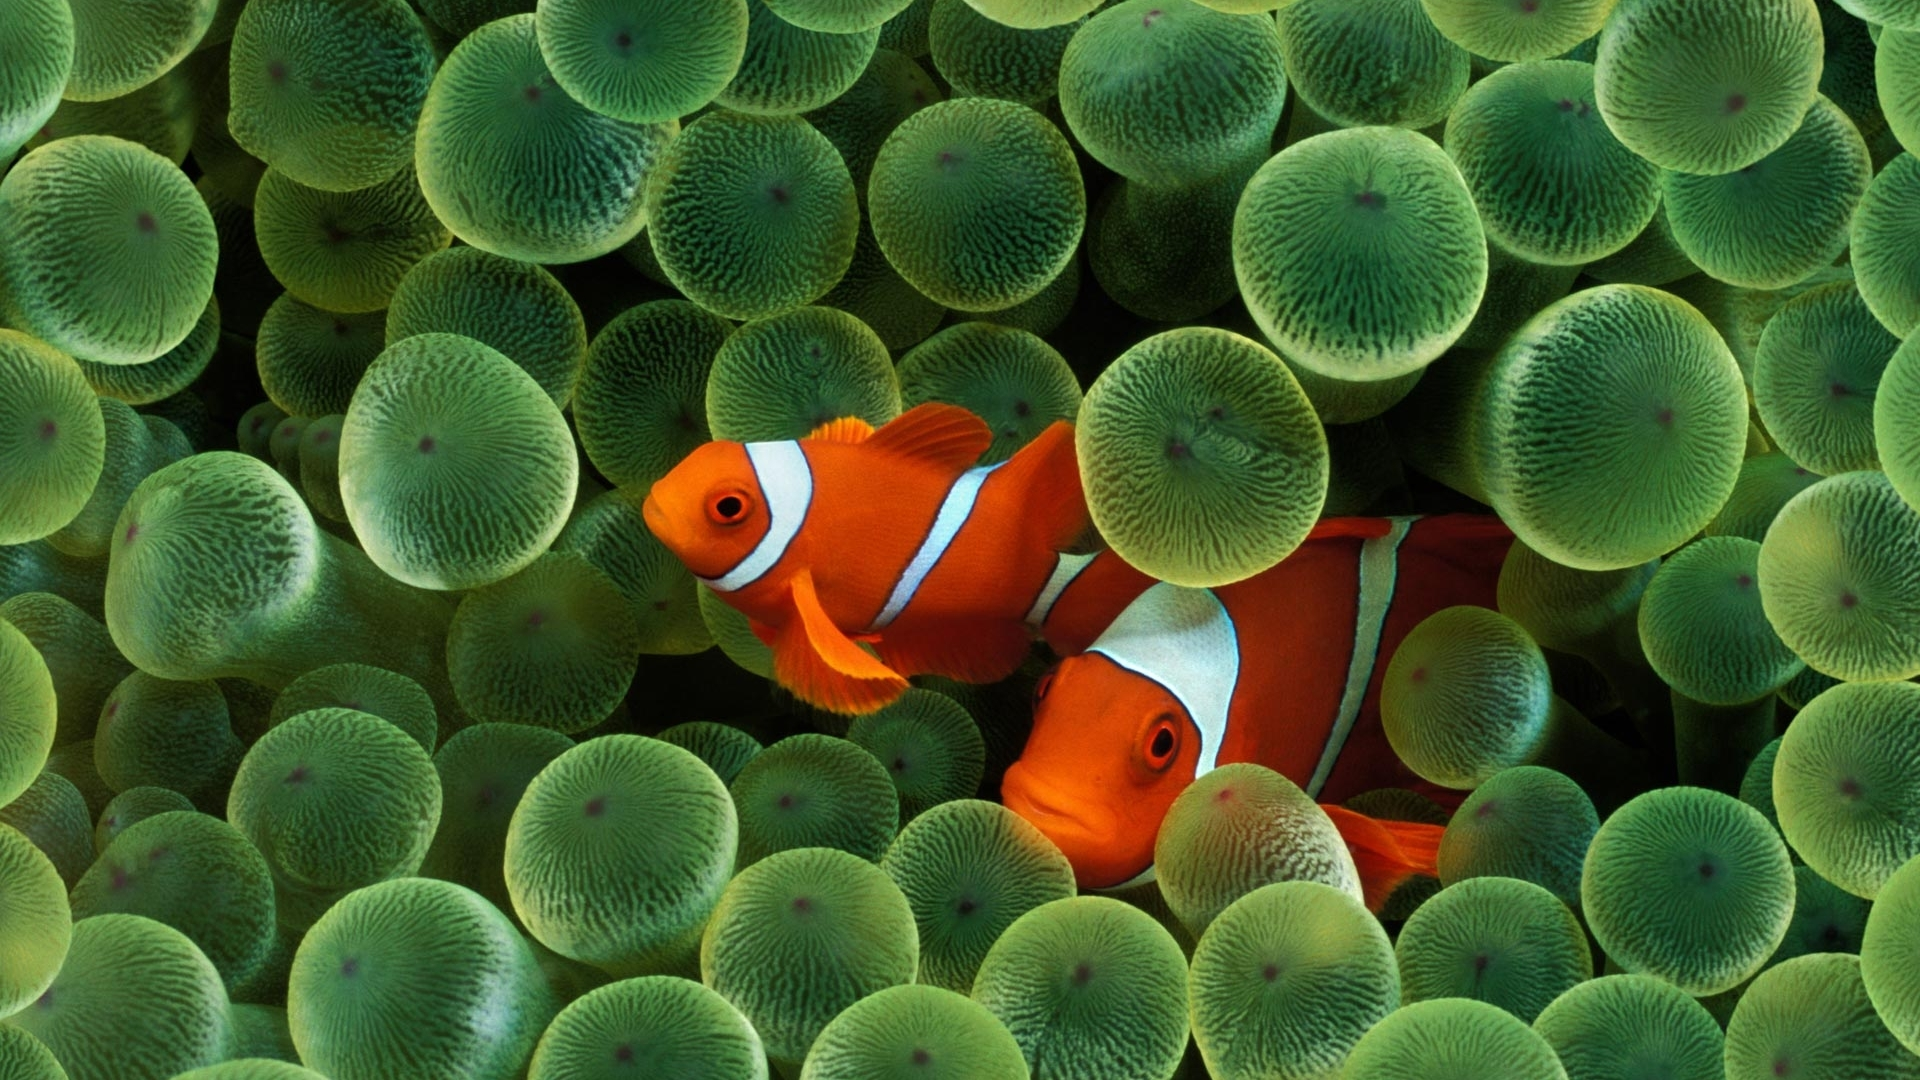 clownfish sea anemones HD Wallpaper